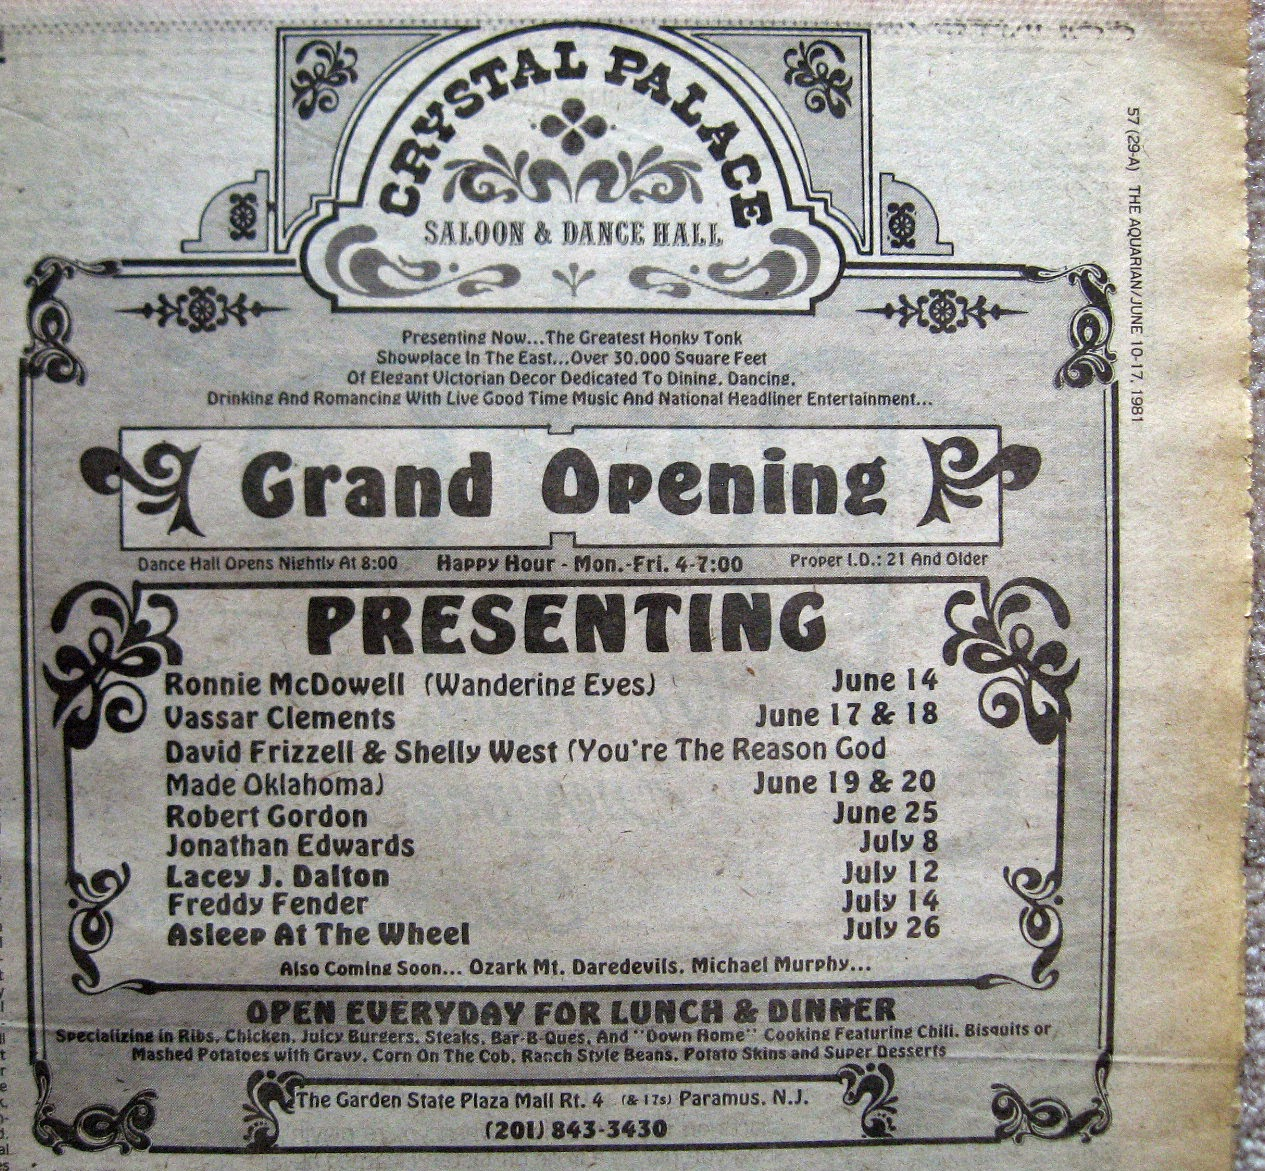 Crystal Palace Grand Opening band line up 1981